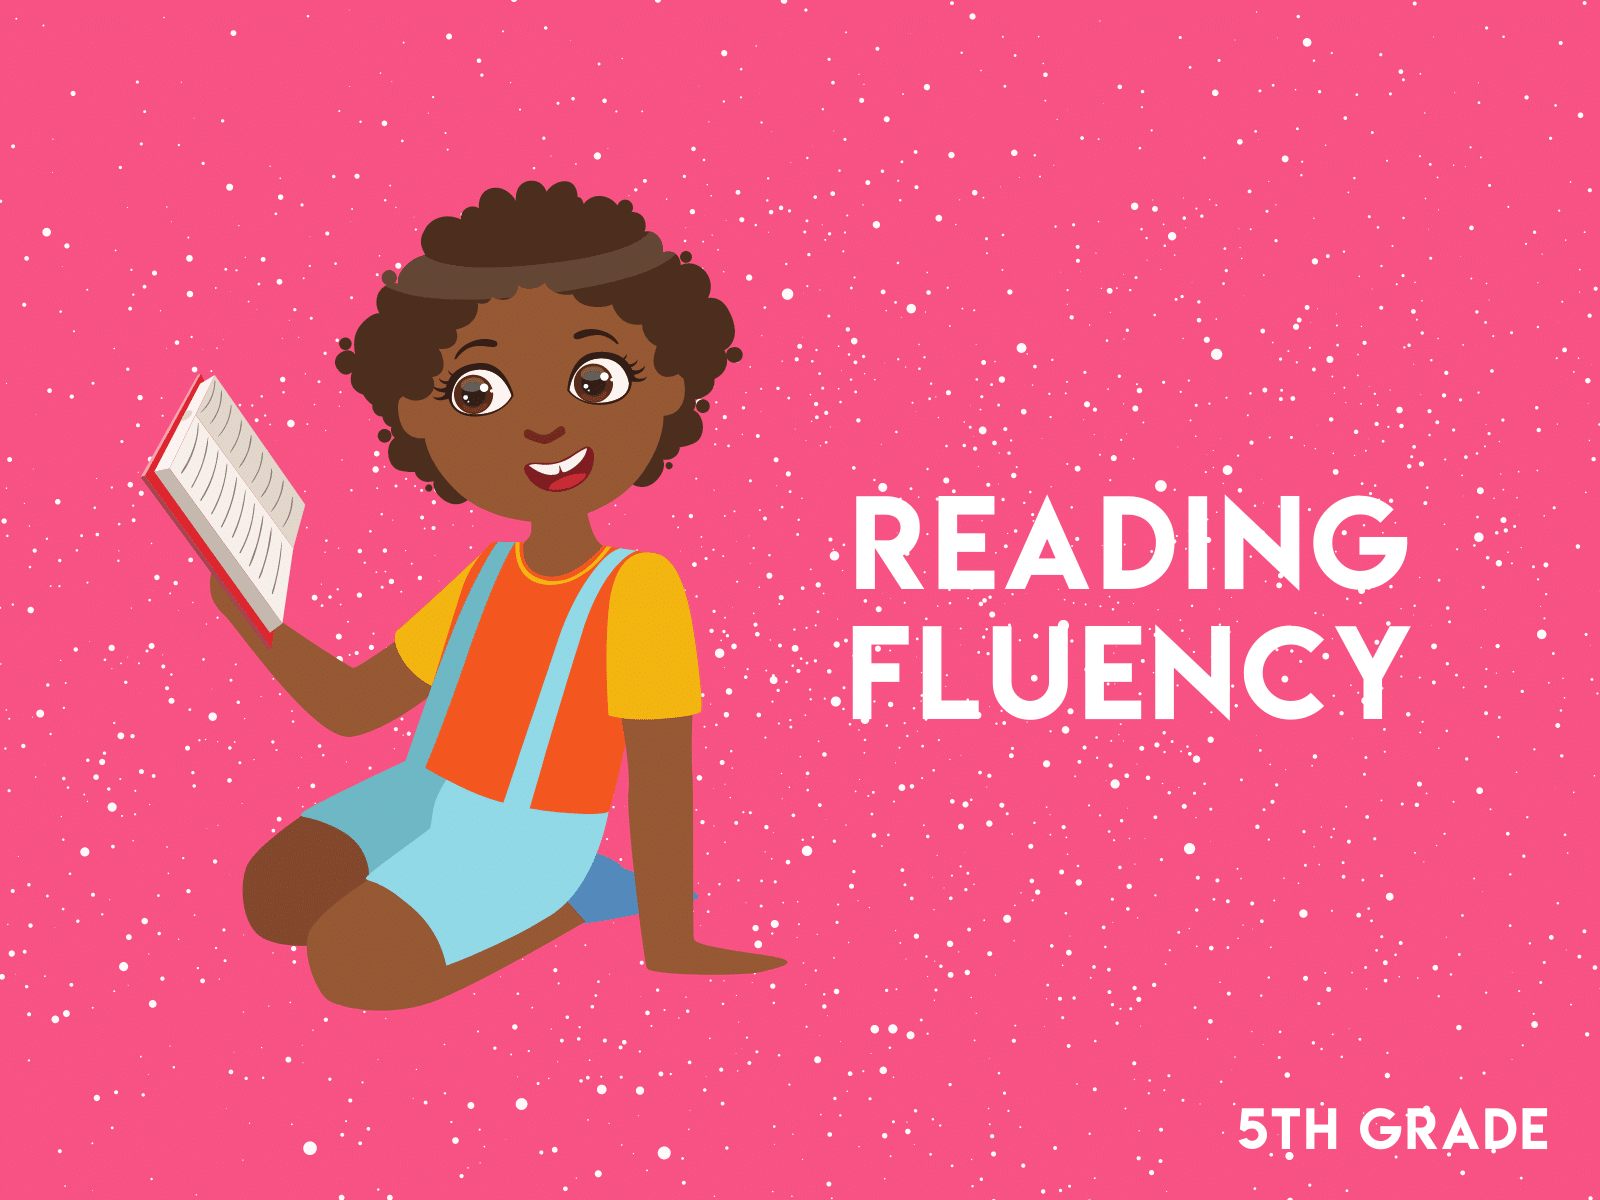 Improve 5th grade reading fluency with this free workbook.